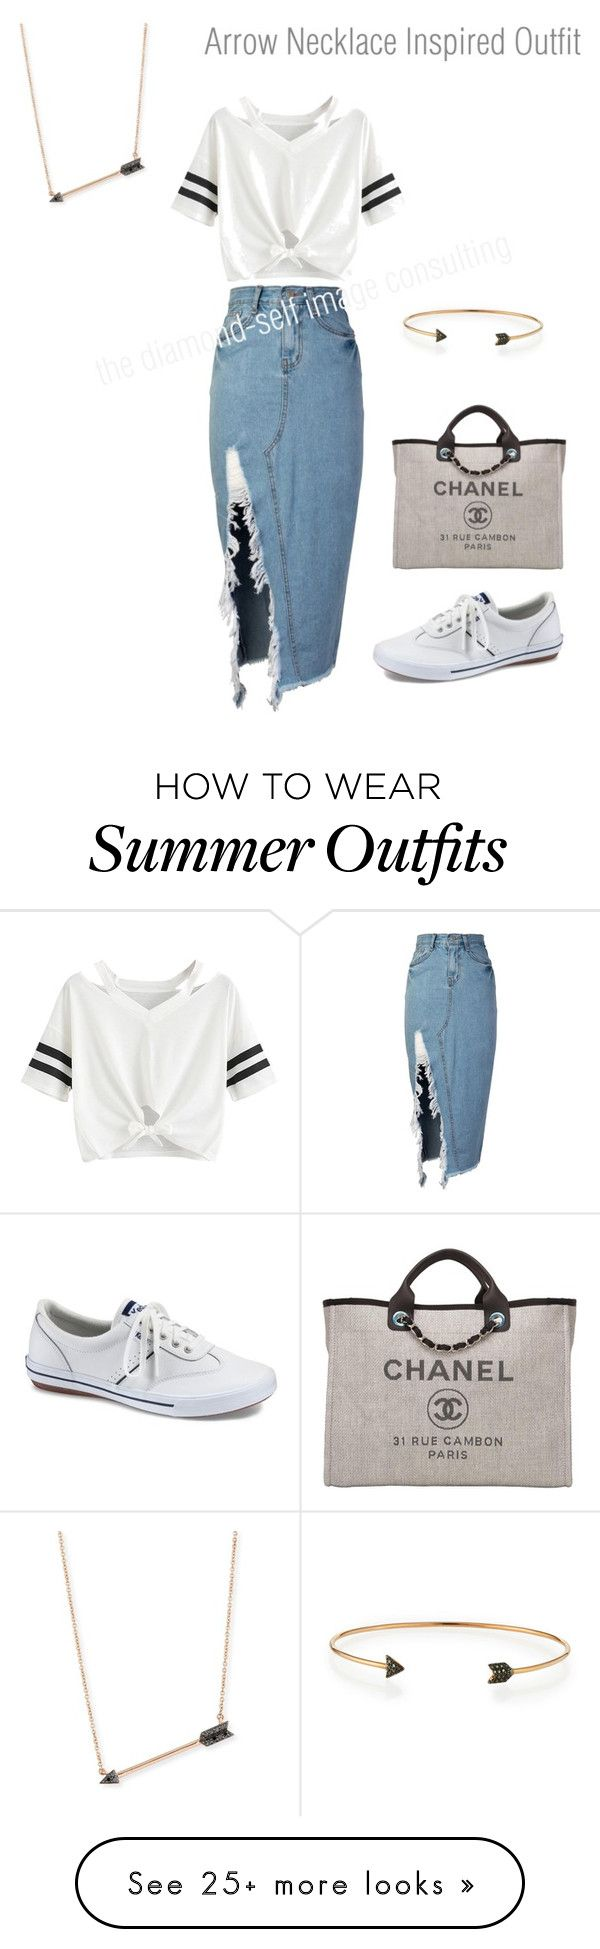 """""""arrow necklace inspired outfit"""" by jessicaahn on Polyvore featuring storets, Chanel, Sydney Evan, Keds and Diane Kordas"""